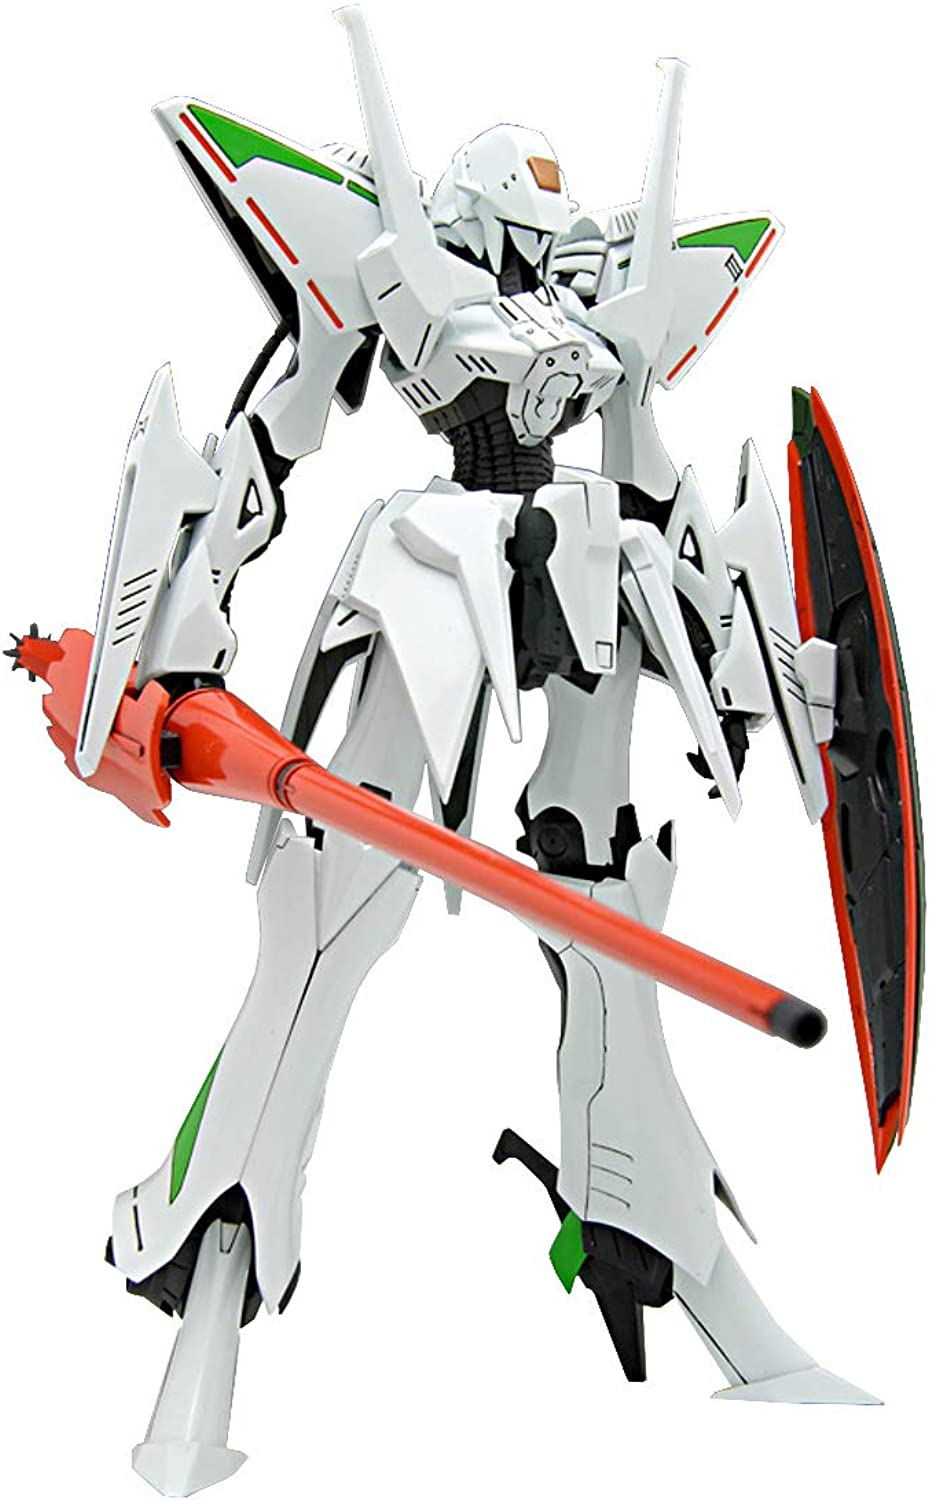 1 144 Scale Five Star Stories - Fire Buster Engage SR3 NEW EDITION 2010 (Weiß Sword) Construction Model (japan import)